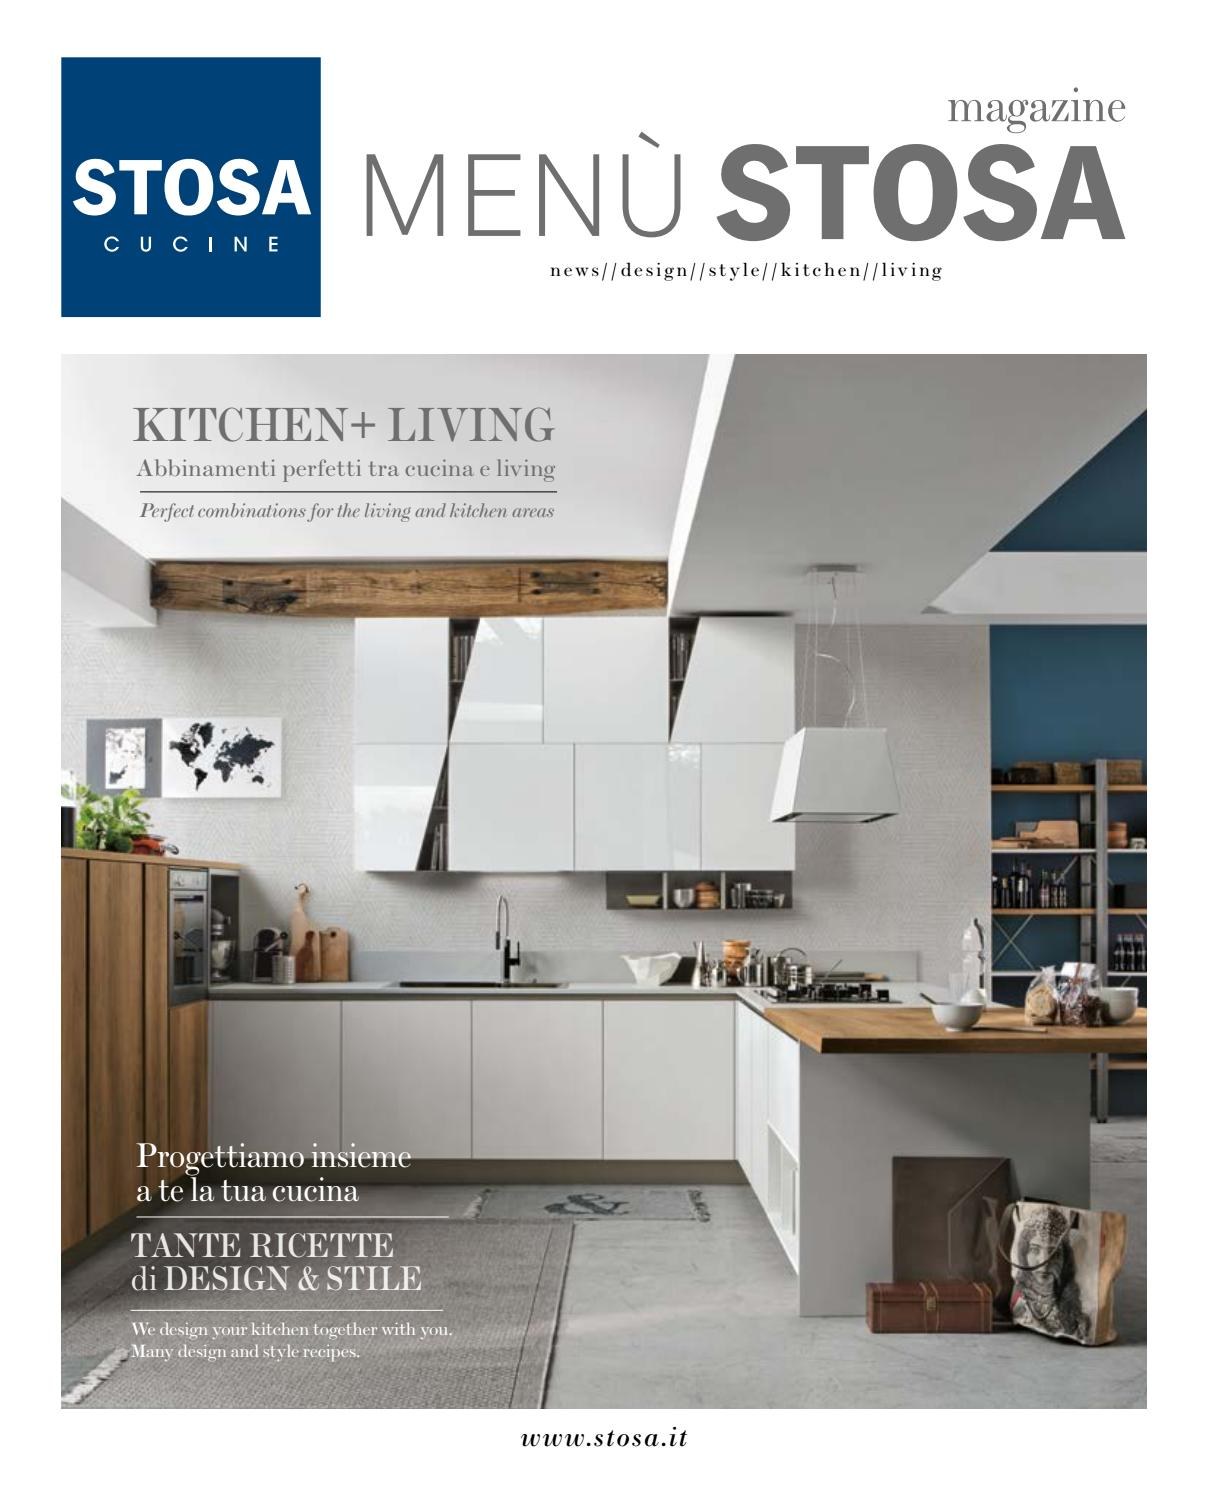 Cucina Ad Angolo Stosa Menù Stosa 2017 By Stosa Cucine Issuu